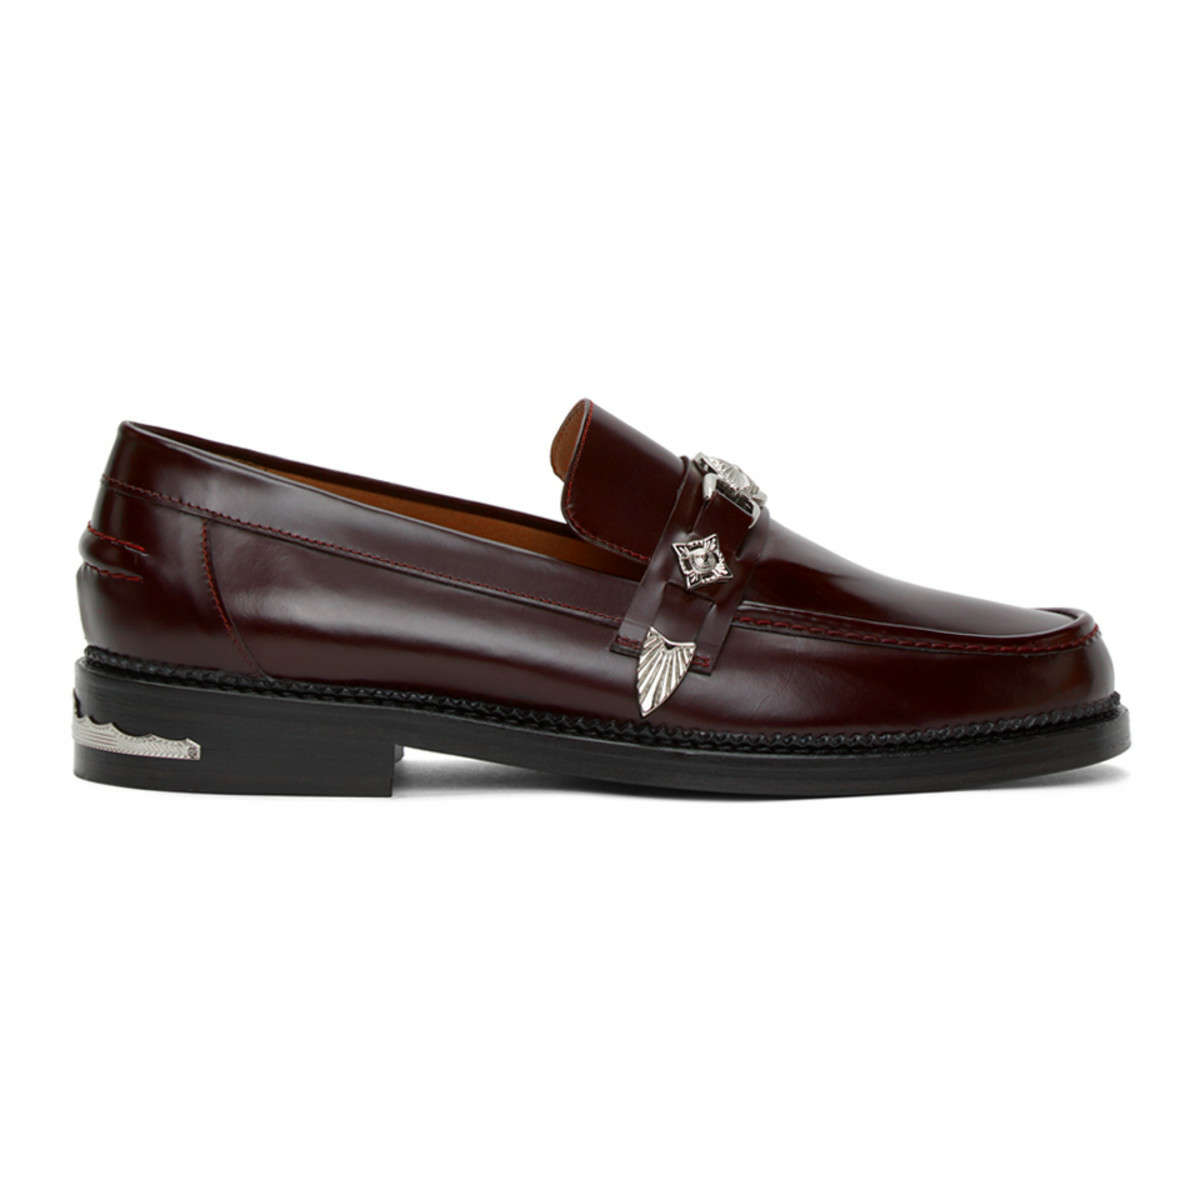 Men SHOES - GOOFASH - Mens LOAFERS